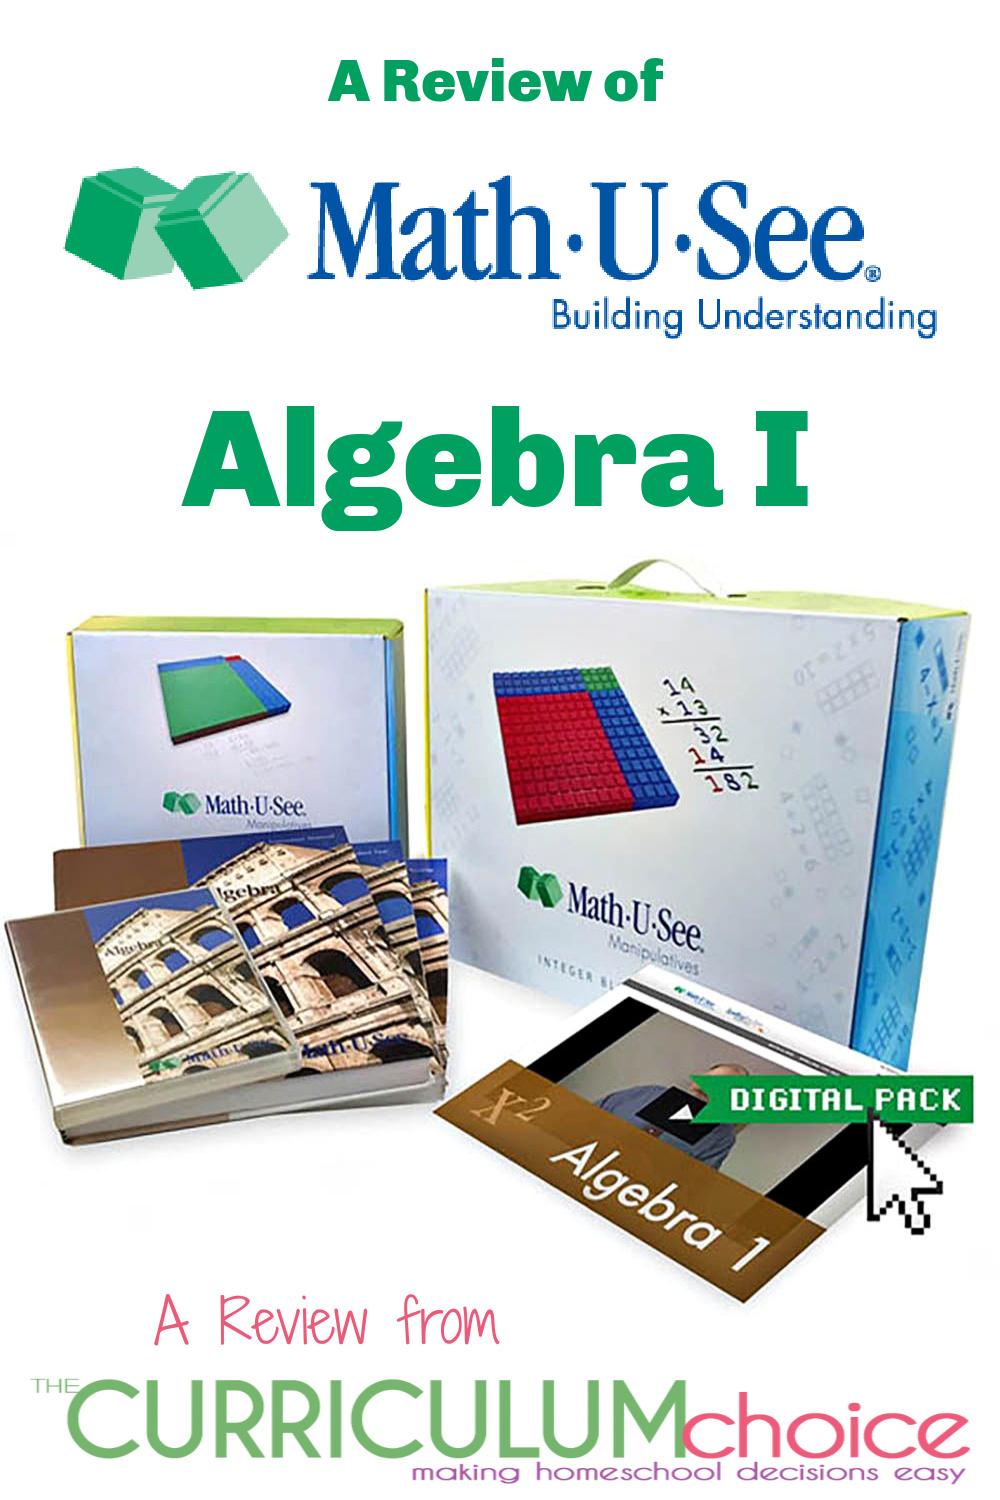 Math-U-See Algebra I is a hands on algebra curriculum that is great for visual-spatial learners using manipulatives to demonstrate problems. A Review from The Curriculum Choice.